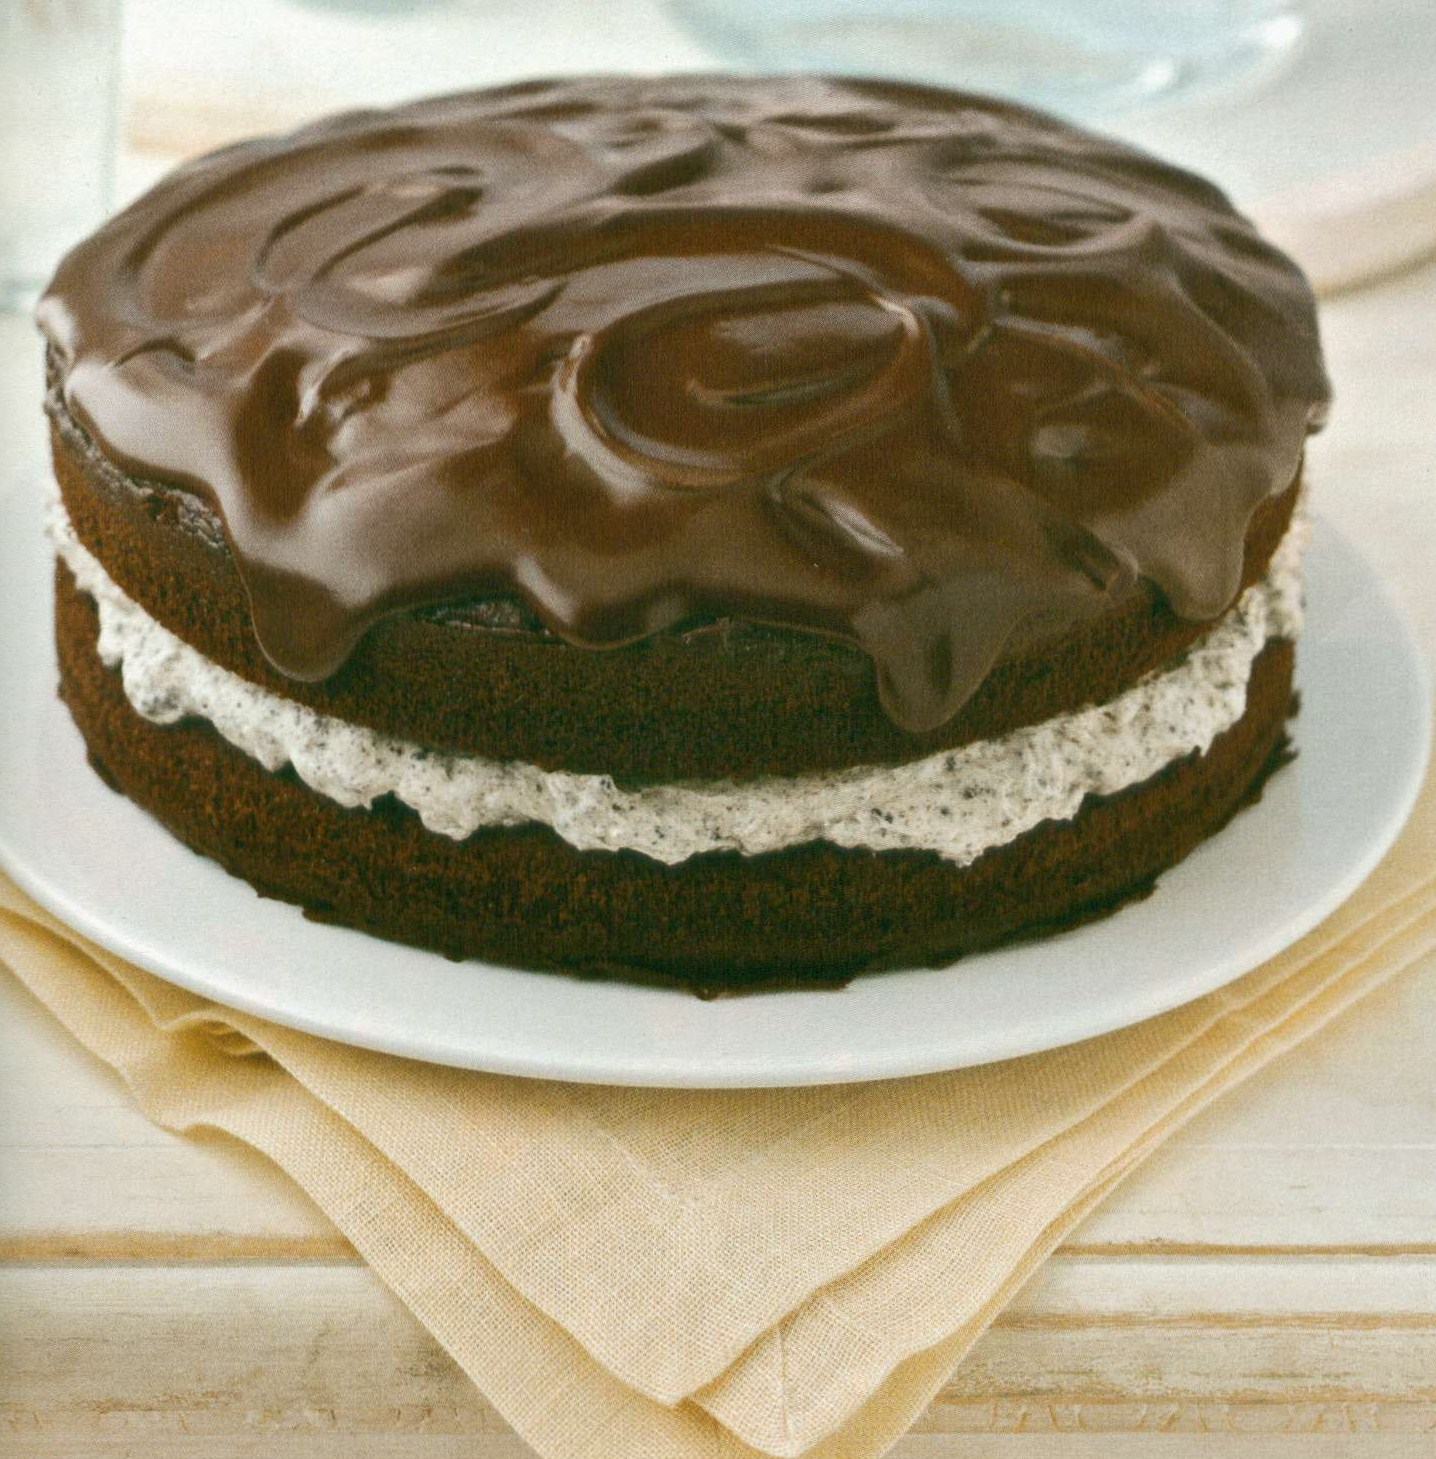 Rosanna's Kitchen: Chocolate-Covered OREO Cookie Cake